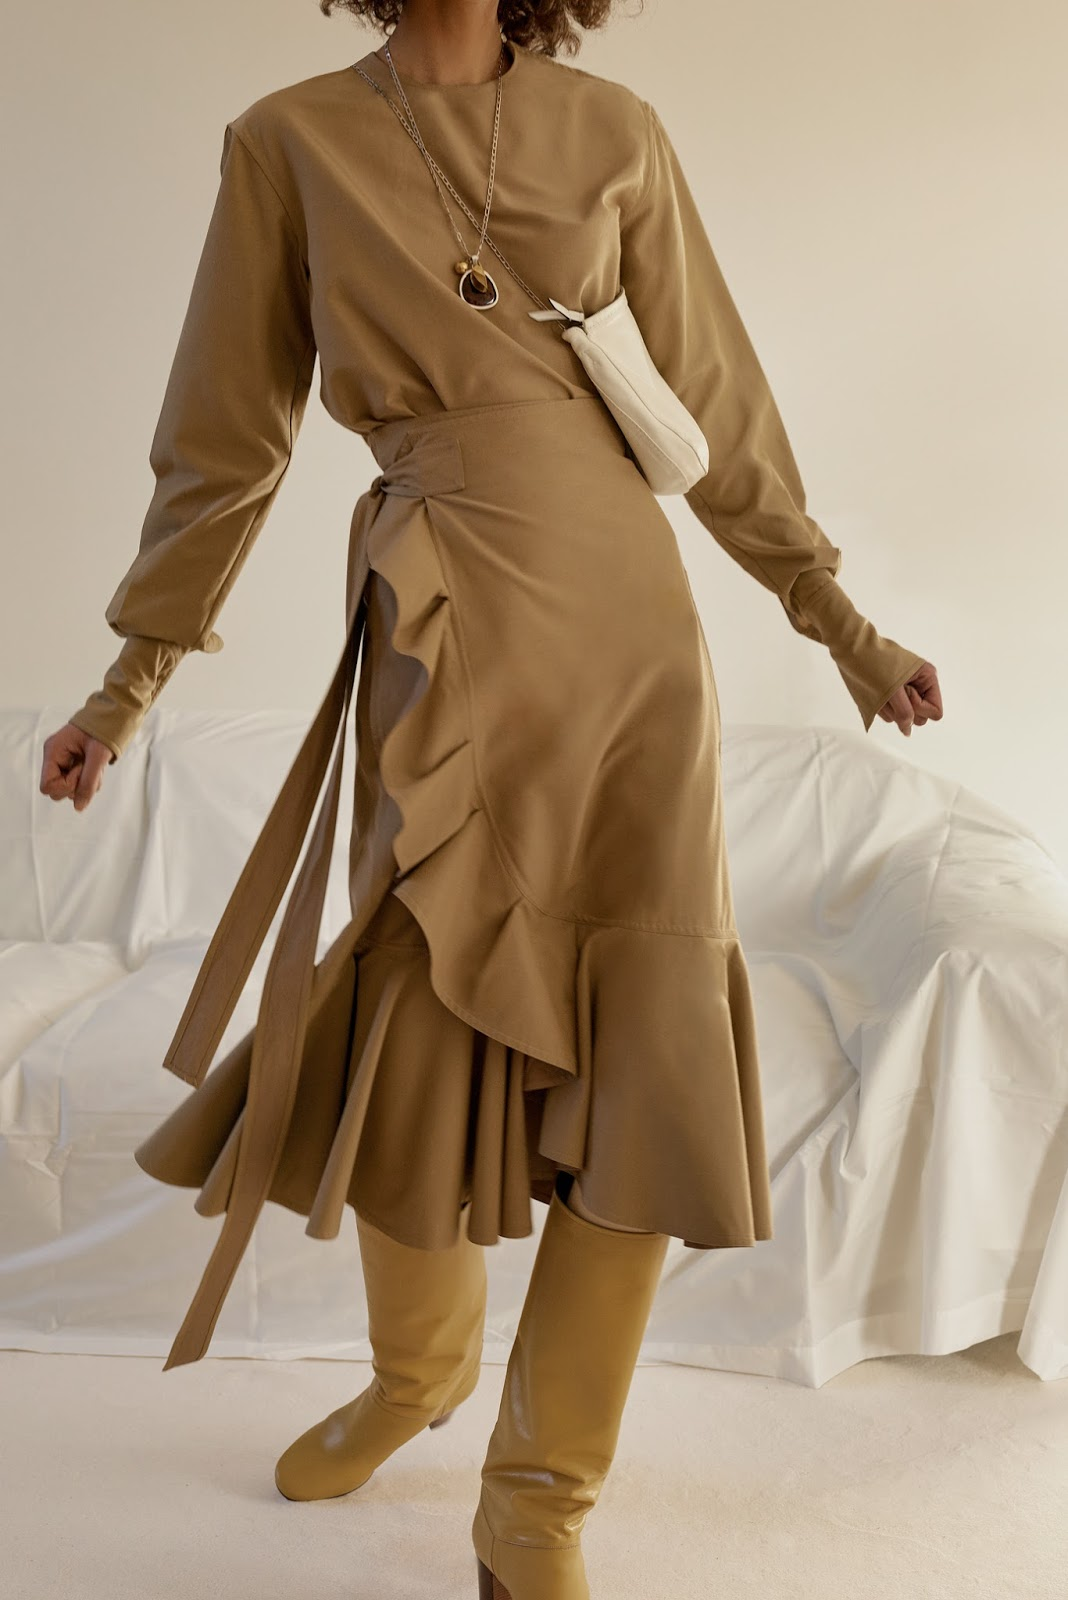 Céline Pre-Fall/Winter 2016